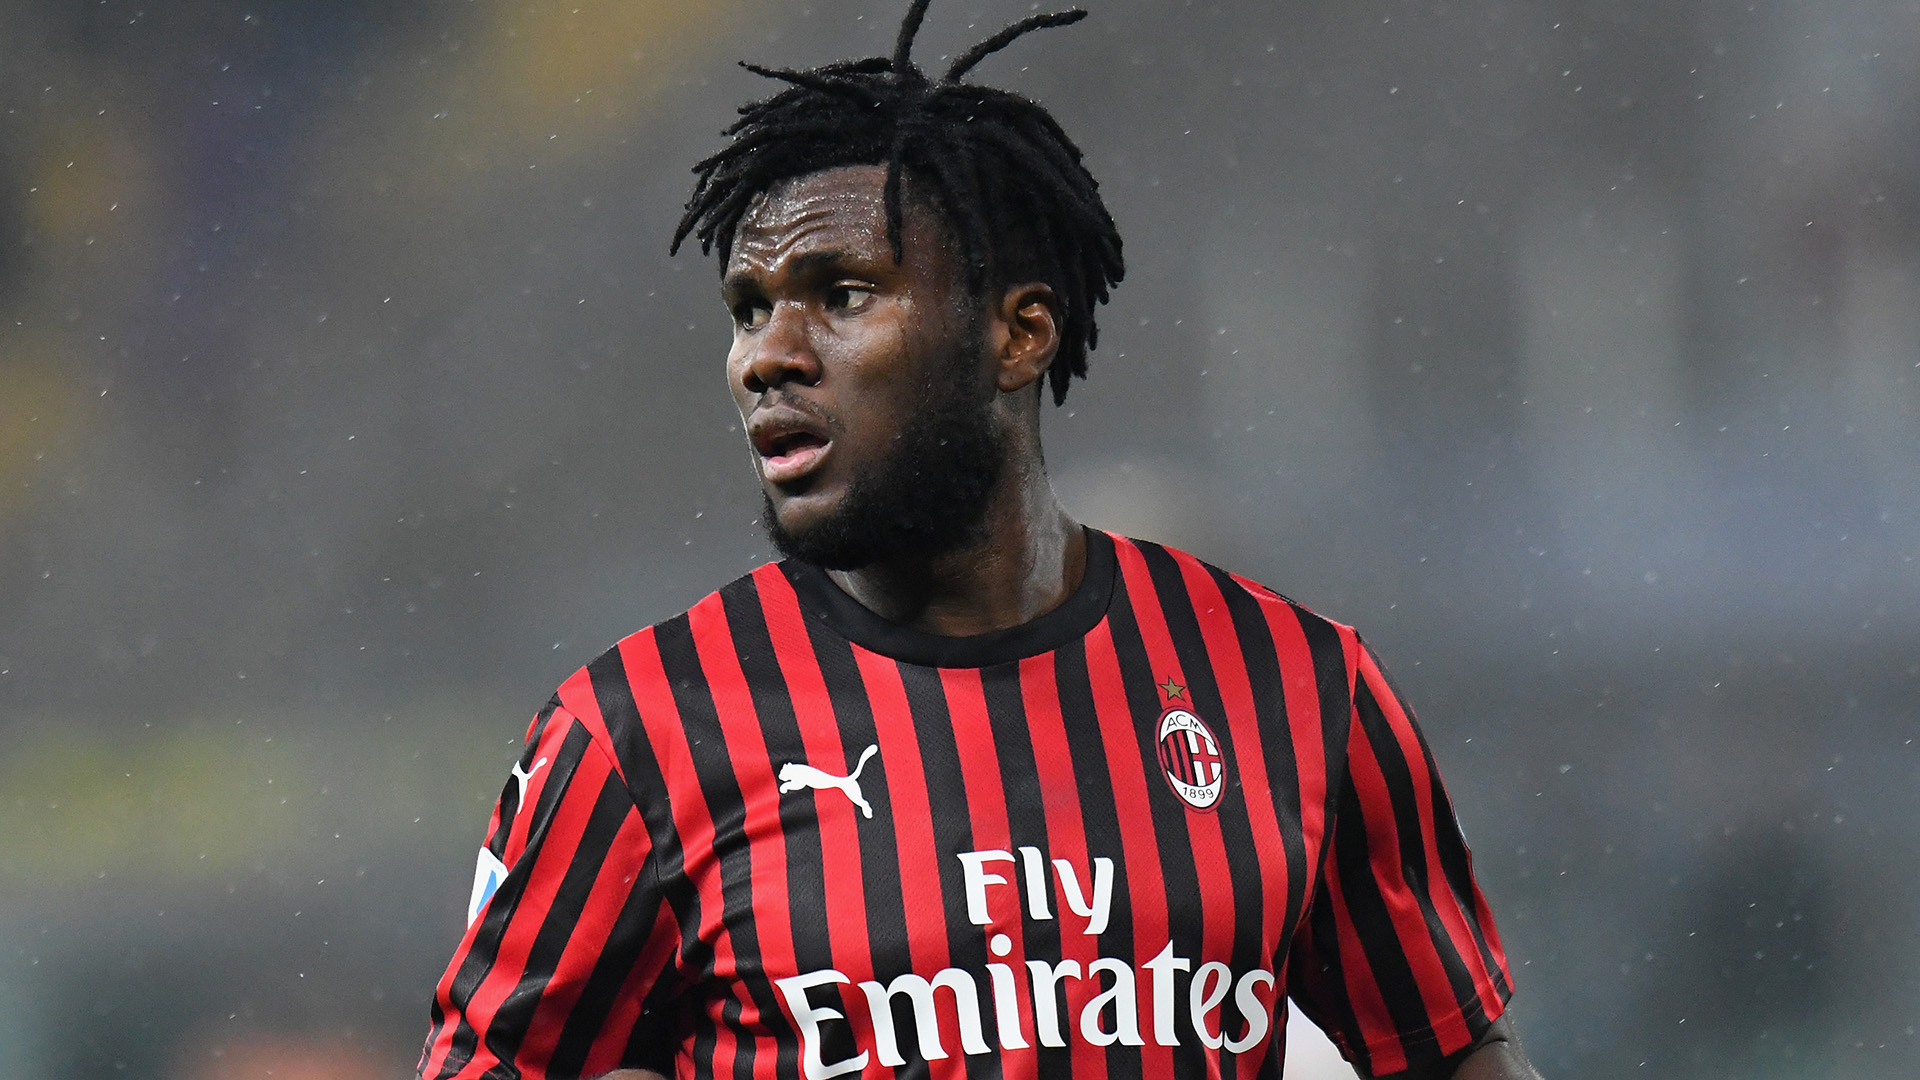 Kessie stuck in Ivory Coast as Milan players return to Italy